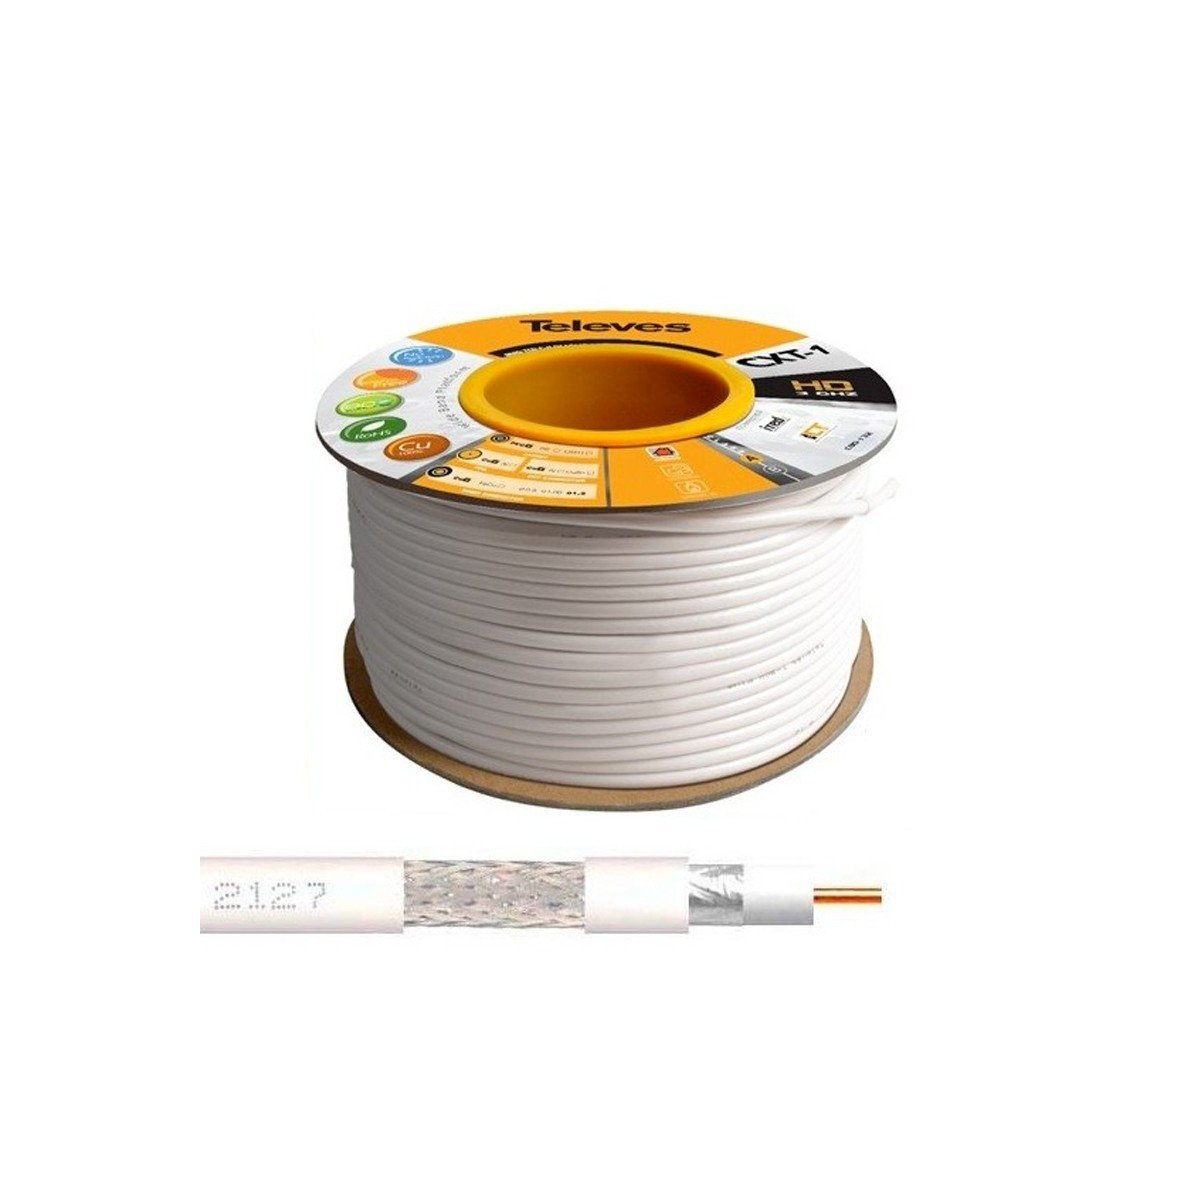 100M Cable Coaxial Blanco 17 VATCS ClassA Televes 2127 CXT-1-2127 Televes